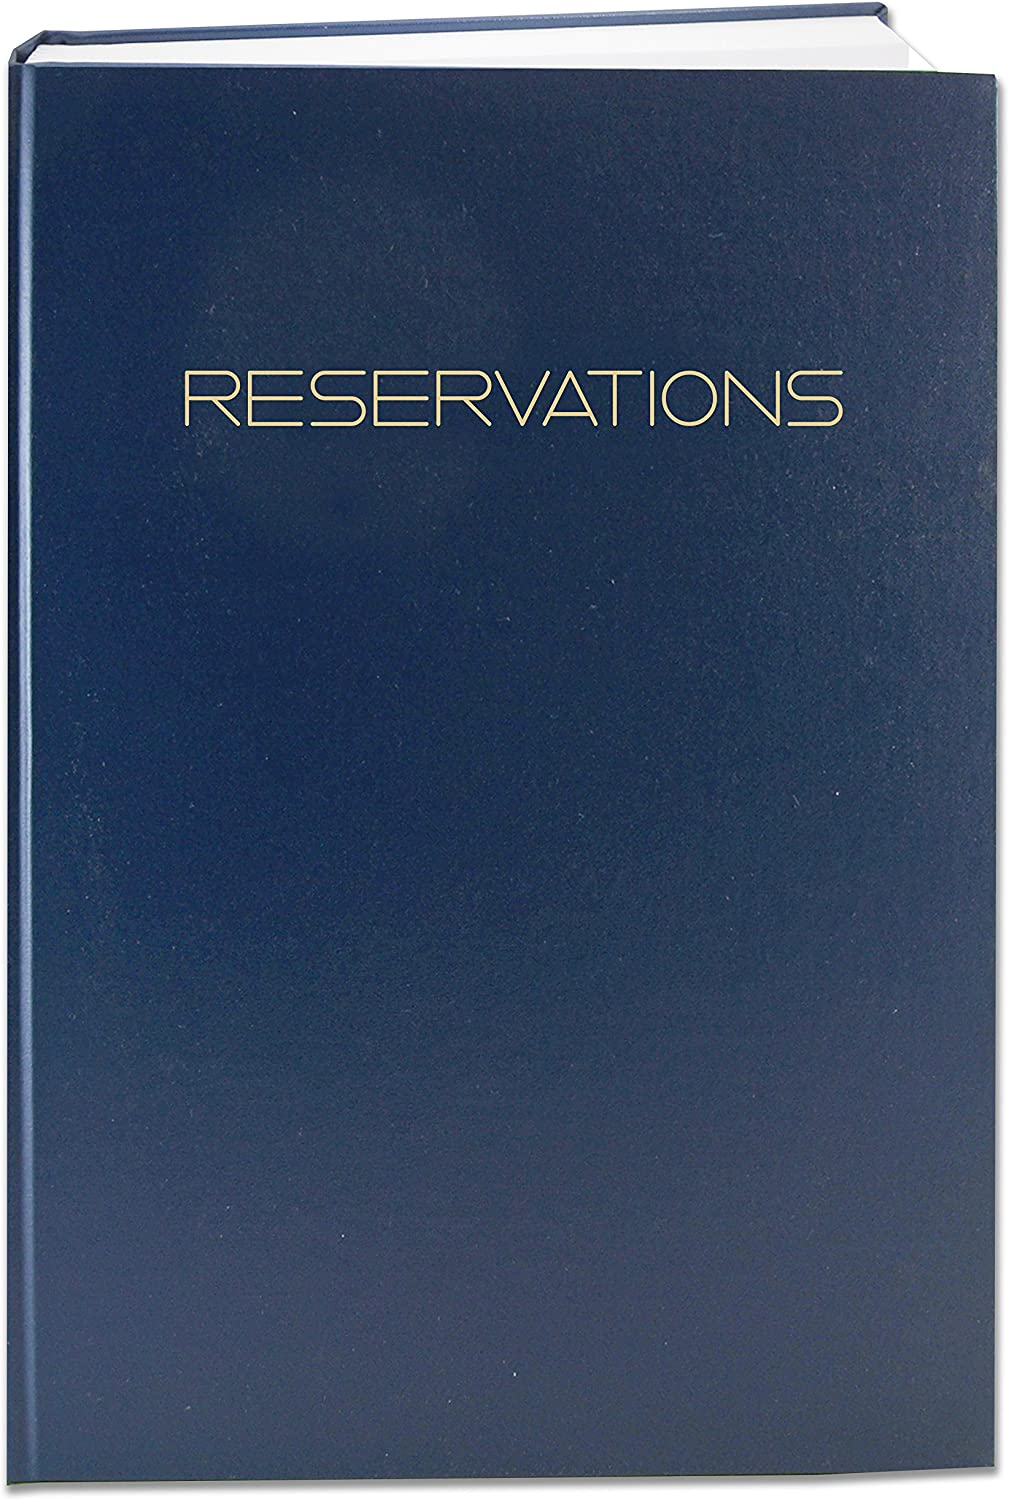 "BookFactory Reservations Book, 365 Day Table Reservations, Restaurant Dinner Reservations, 408 Pages, 8 7/8"" x 13 1/2"" Blue Imitation Leather, Smyth Sewn Hardbound (LOG-408-OCS-A-LBT79-(RESERVATIONS))"